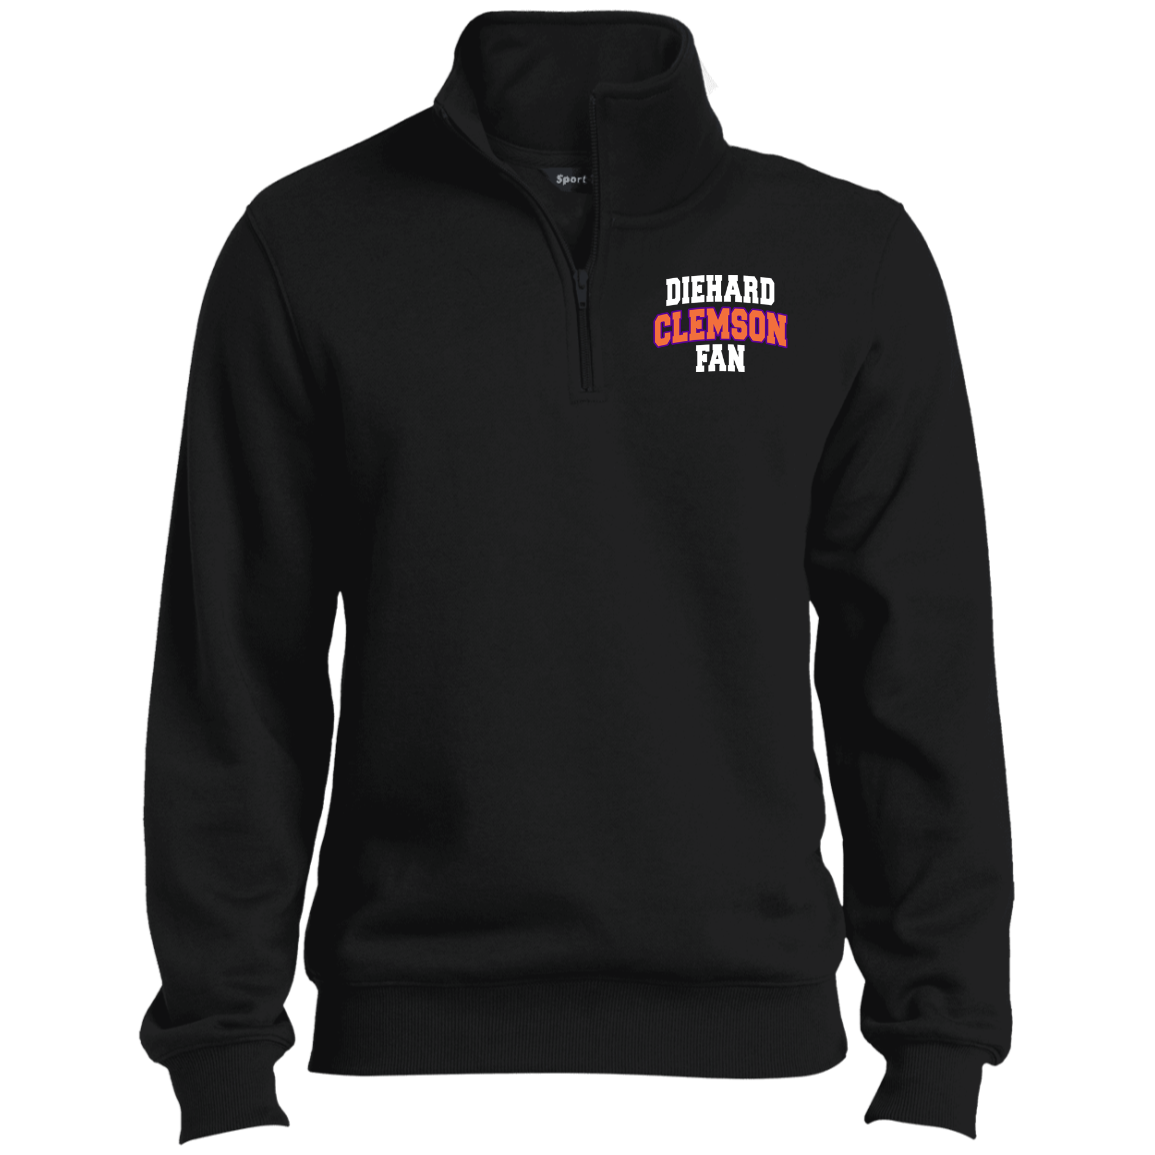 CL Sport-Tek Tall 1/4 Zip Sweatshirt